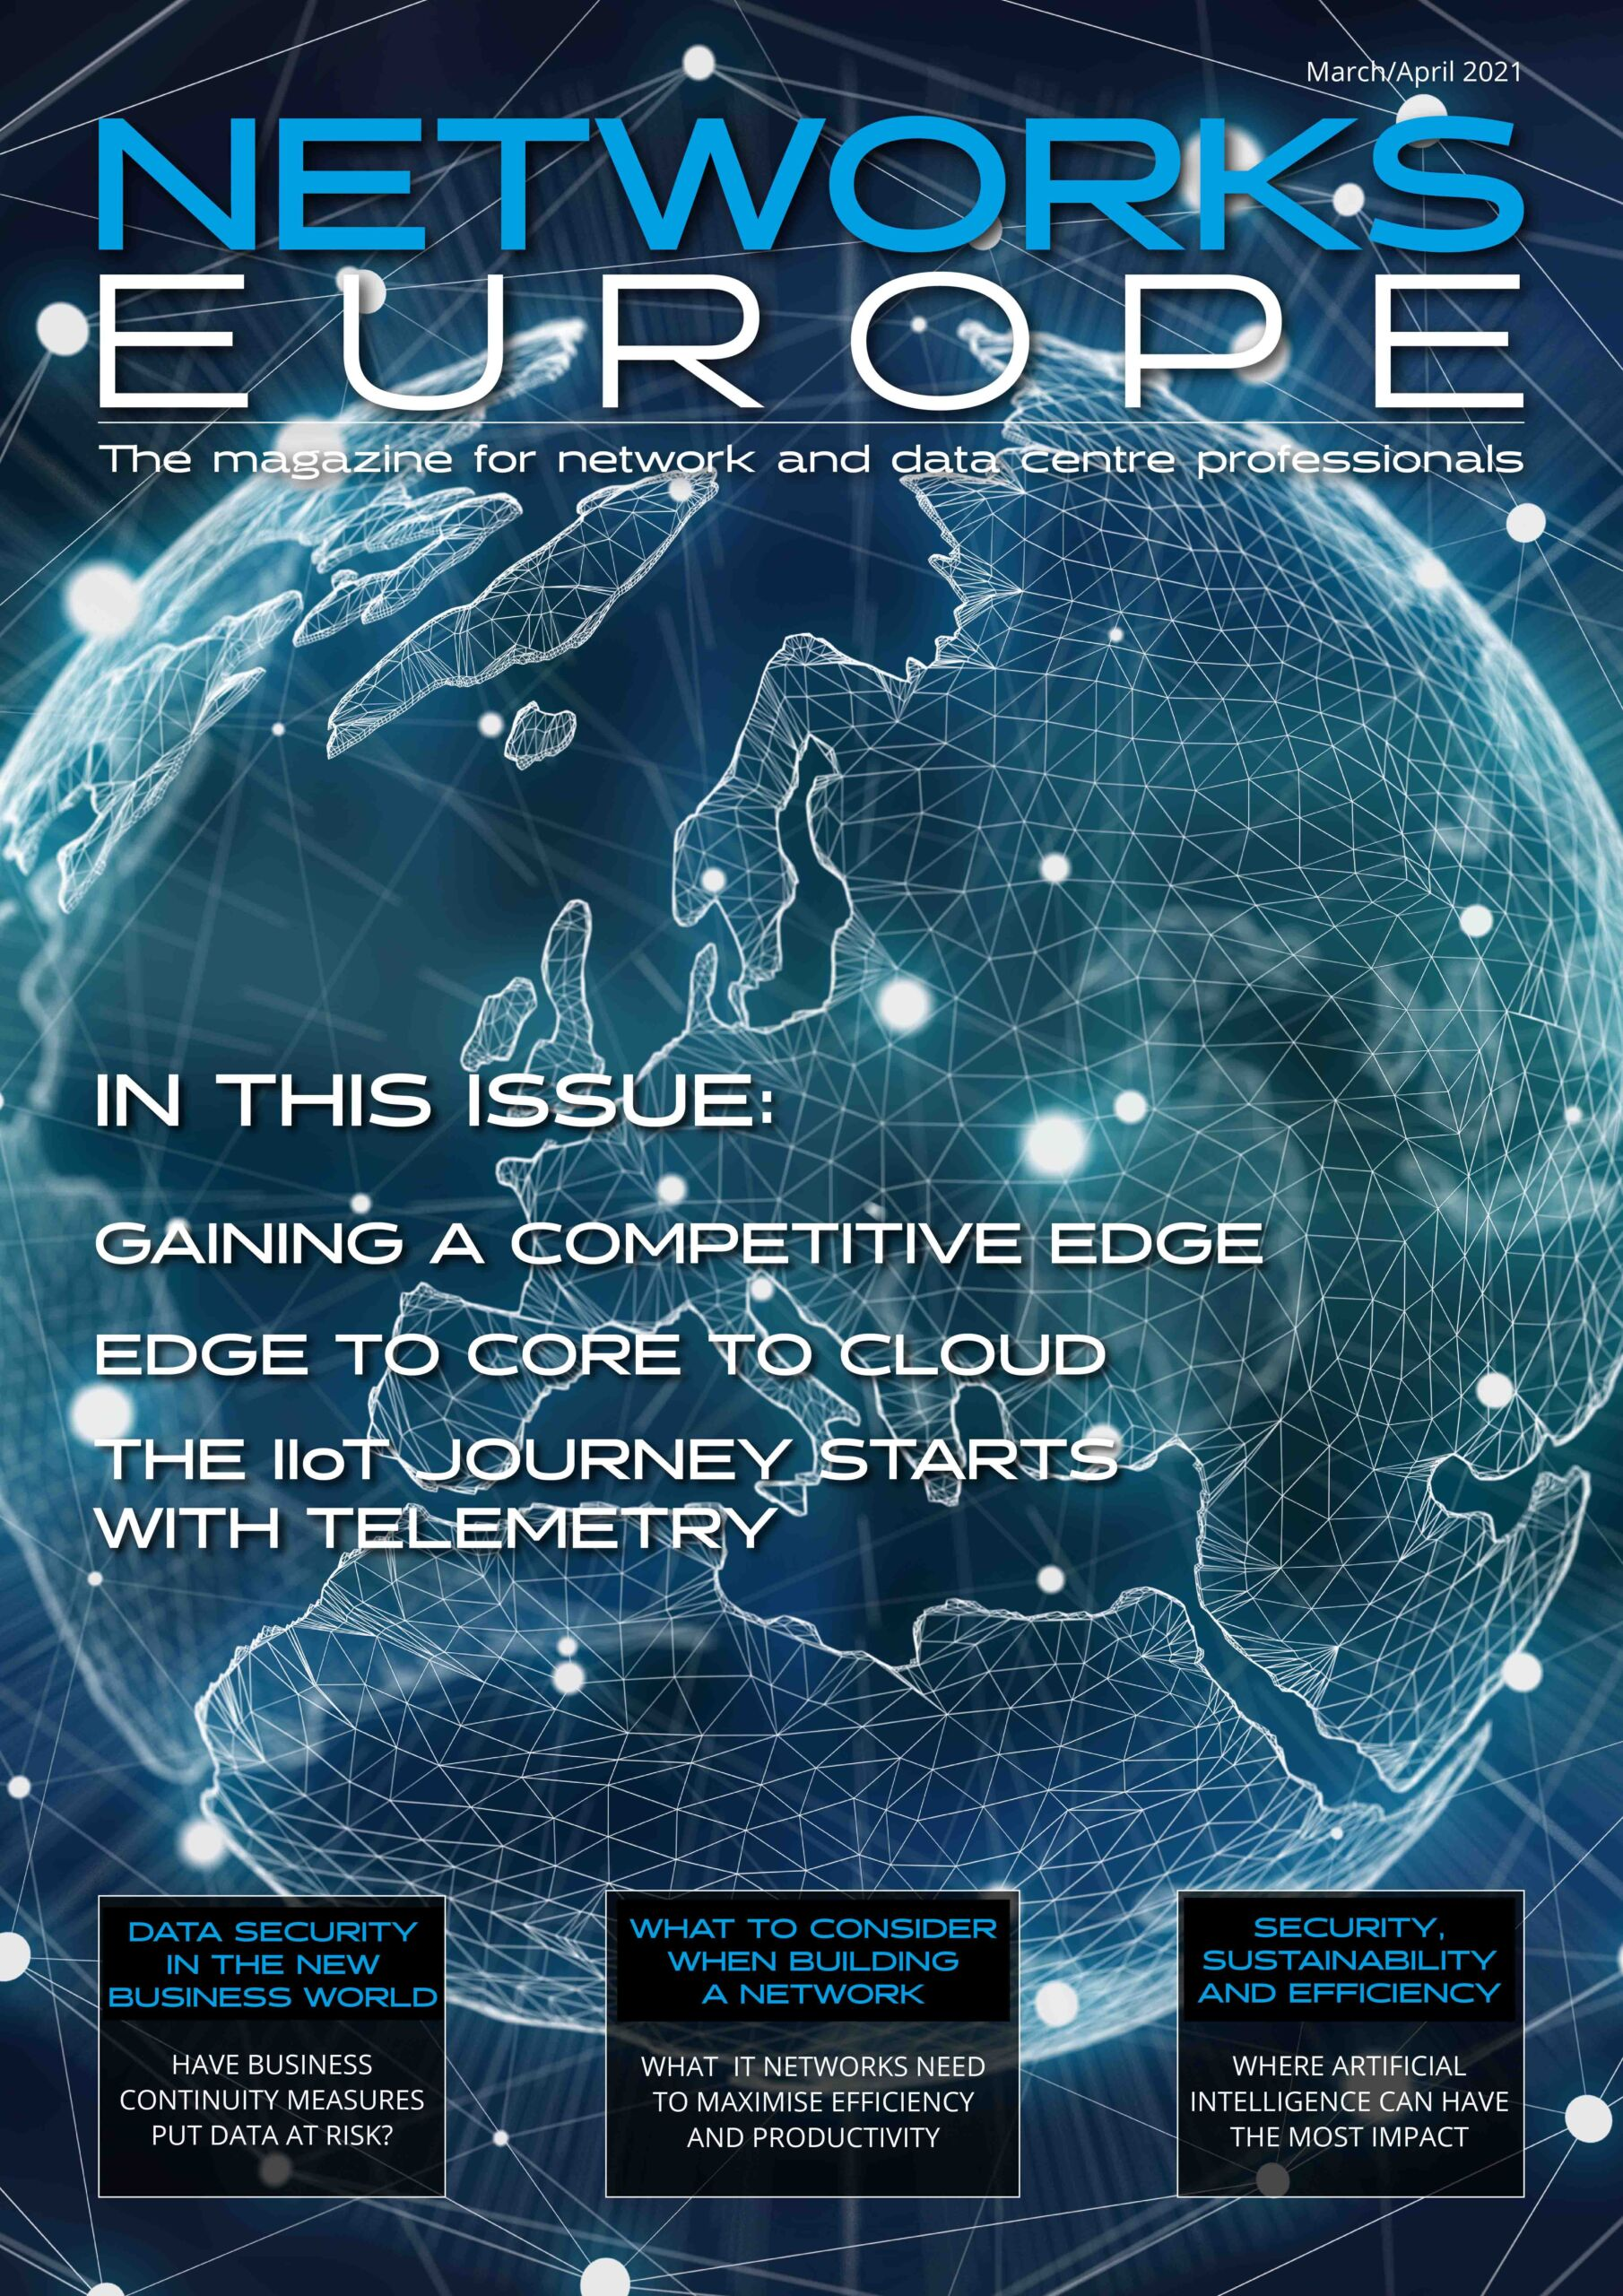 Networks Europe Magazine - March-April 2021 Issue front cover